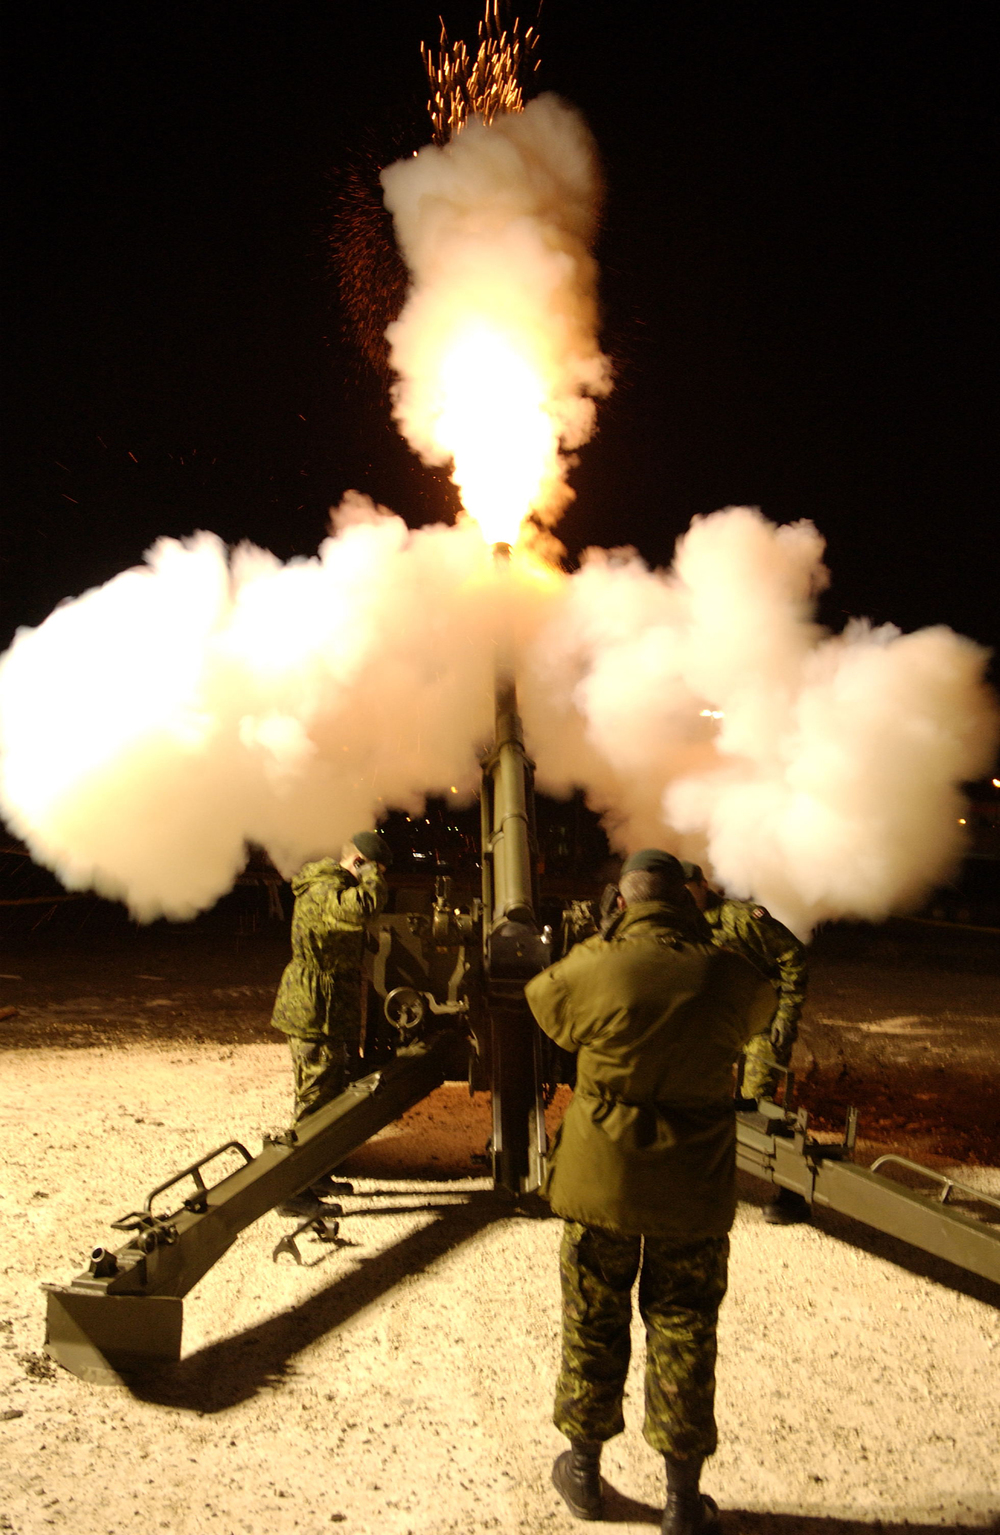 Gunners fire a C3 Howser during a nighttime exercise. This is a close support, field artillery weapon that is mobile, general purpose, light towed, and has the capability to fire extended range munitions up to 18 kilometres. The C3 is manually operated, single-loaded and air-cooled. The C3 is structurally similar to the C1 Howitzer, but is distinguished by its longer 33-calibre barrel and muzzle brake. The gun can fire all standard NATO 105mm Howitzer ammunition. (DND)